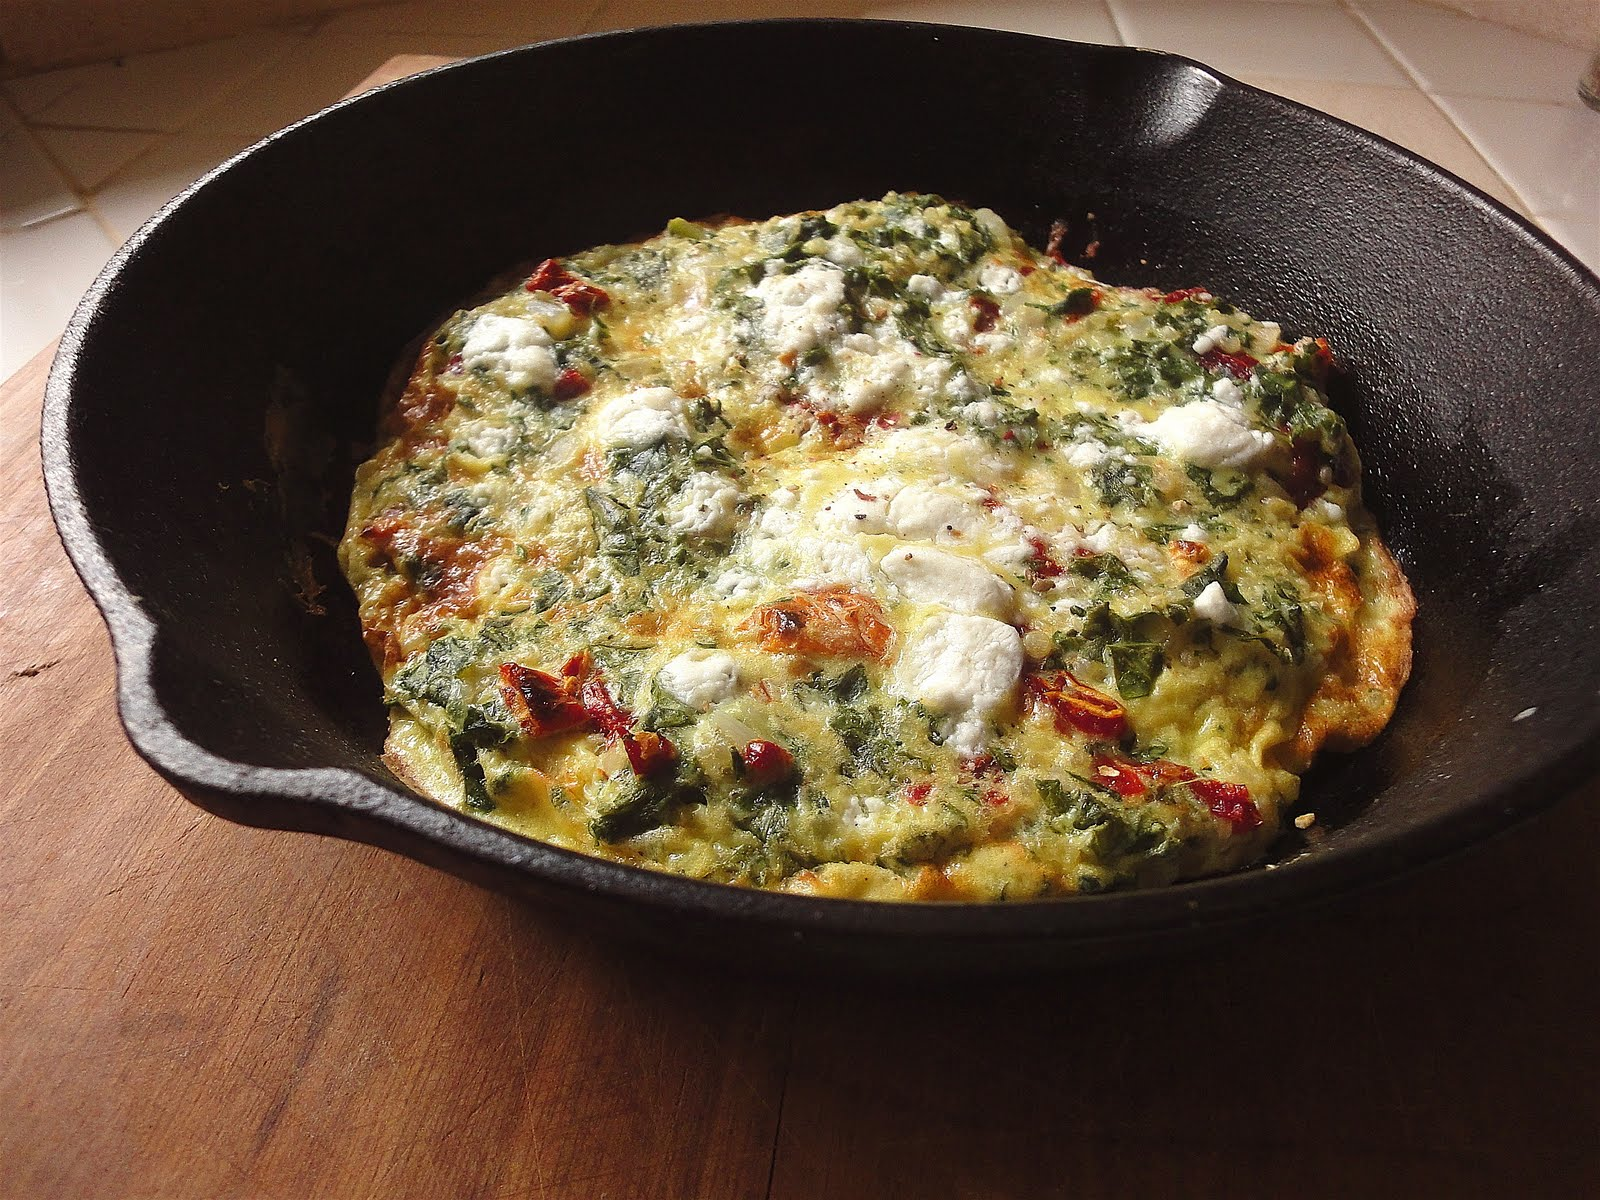 Quinoa Frittata with Sun-dried Tomatoes, Kale and Goat Cheese